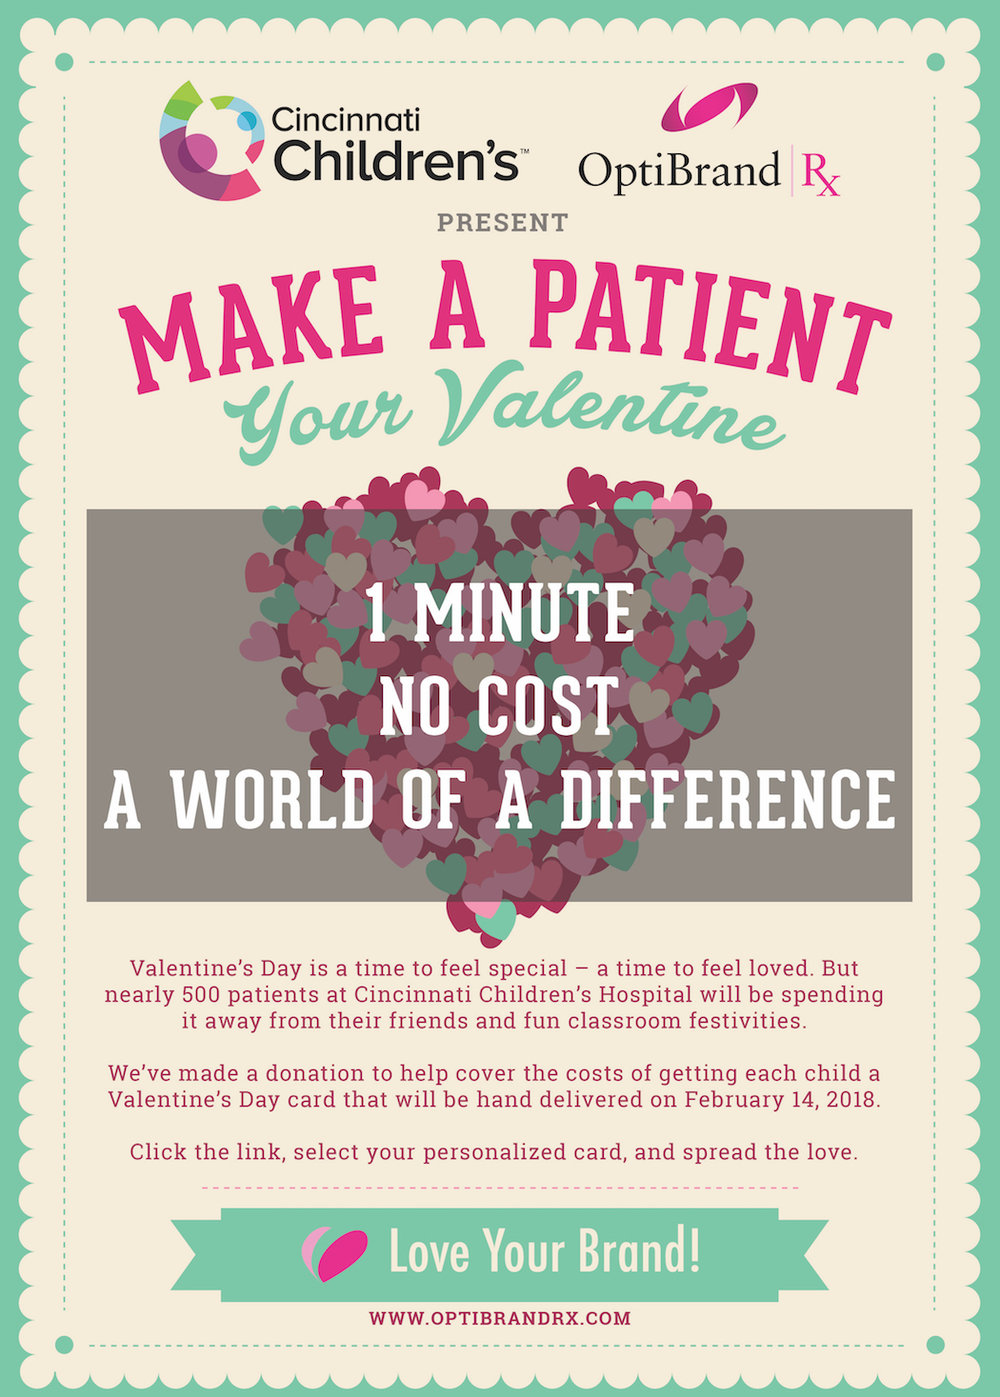 OptiBrand_Rx_Make_a_Patient_Your_Valentine_v2.jpg